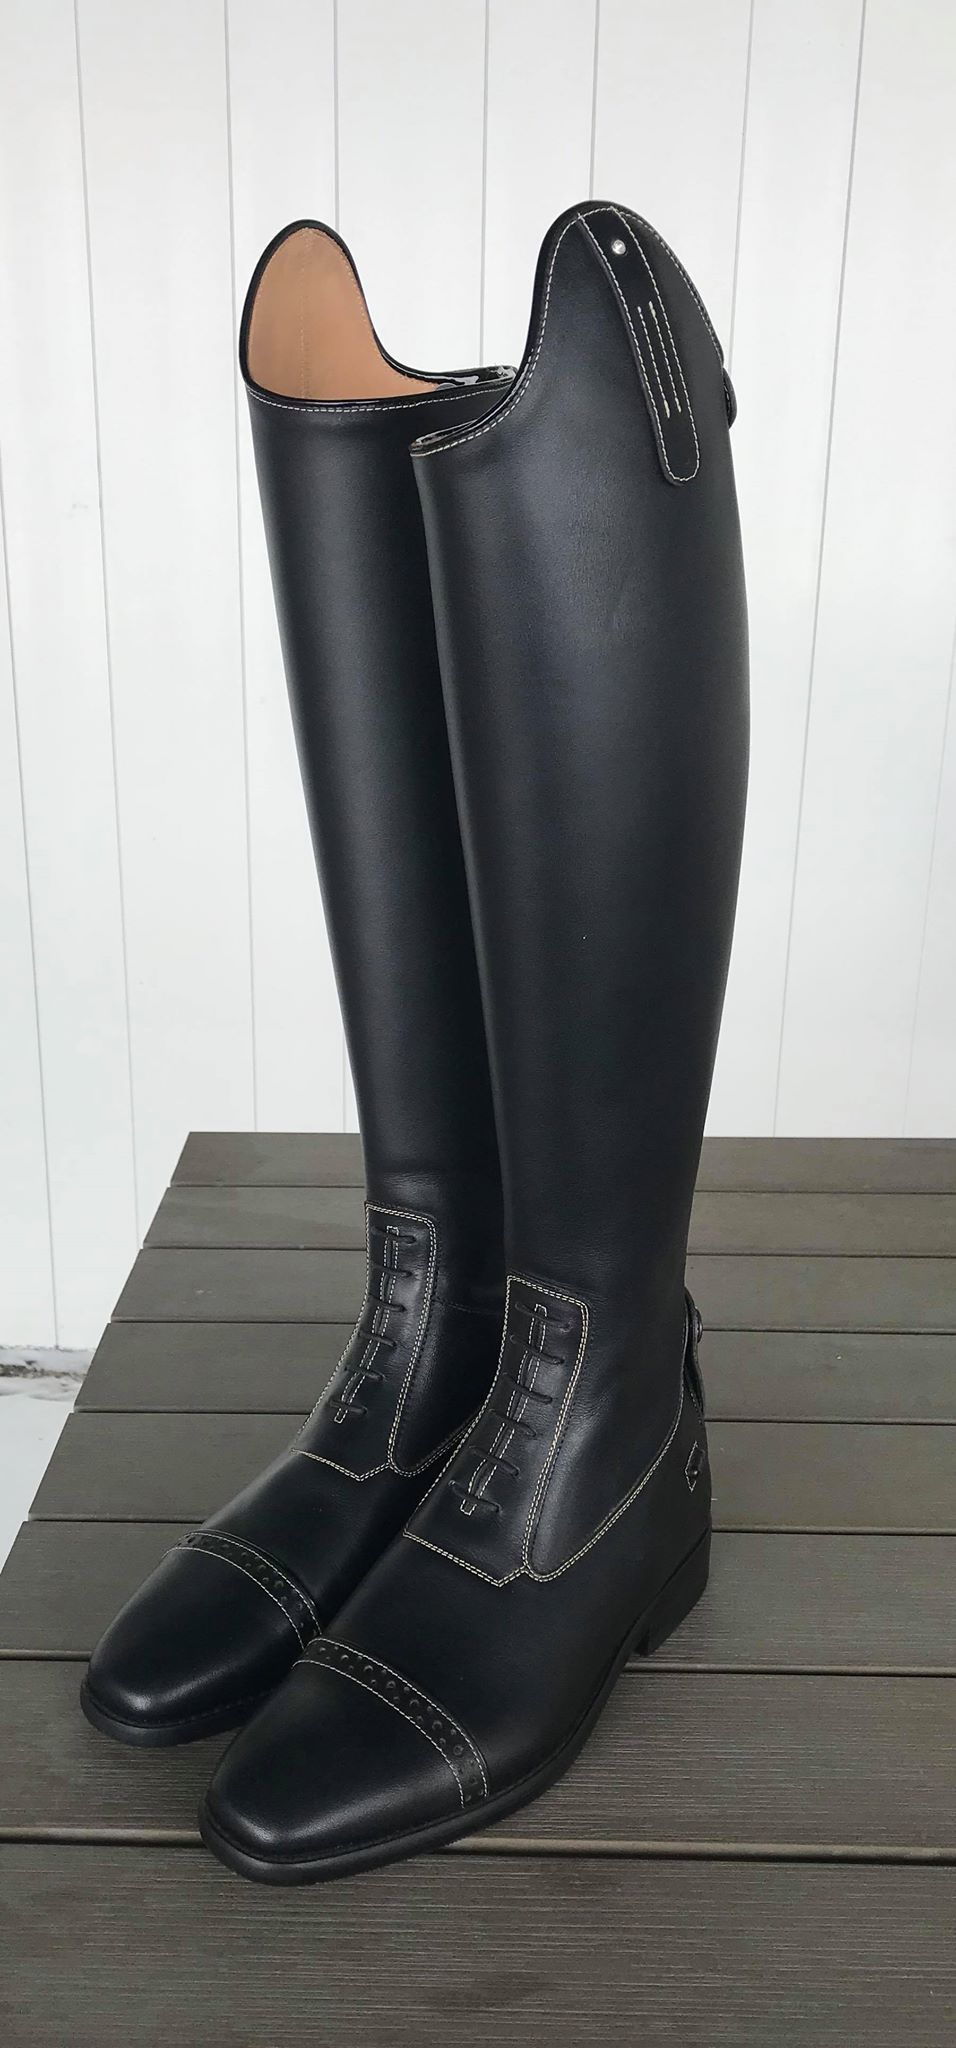 Petrie 'Cinderella' Coventry Field Boot - Equestrian Fashion Outfitters